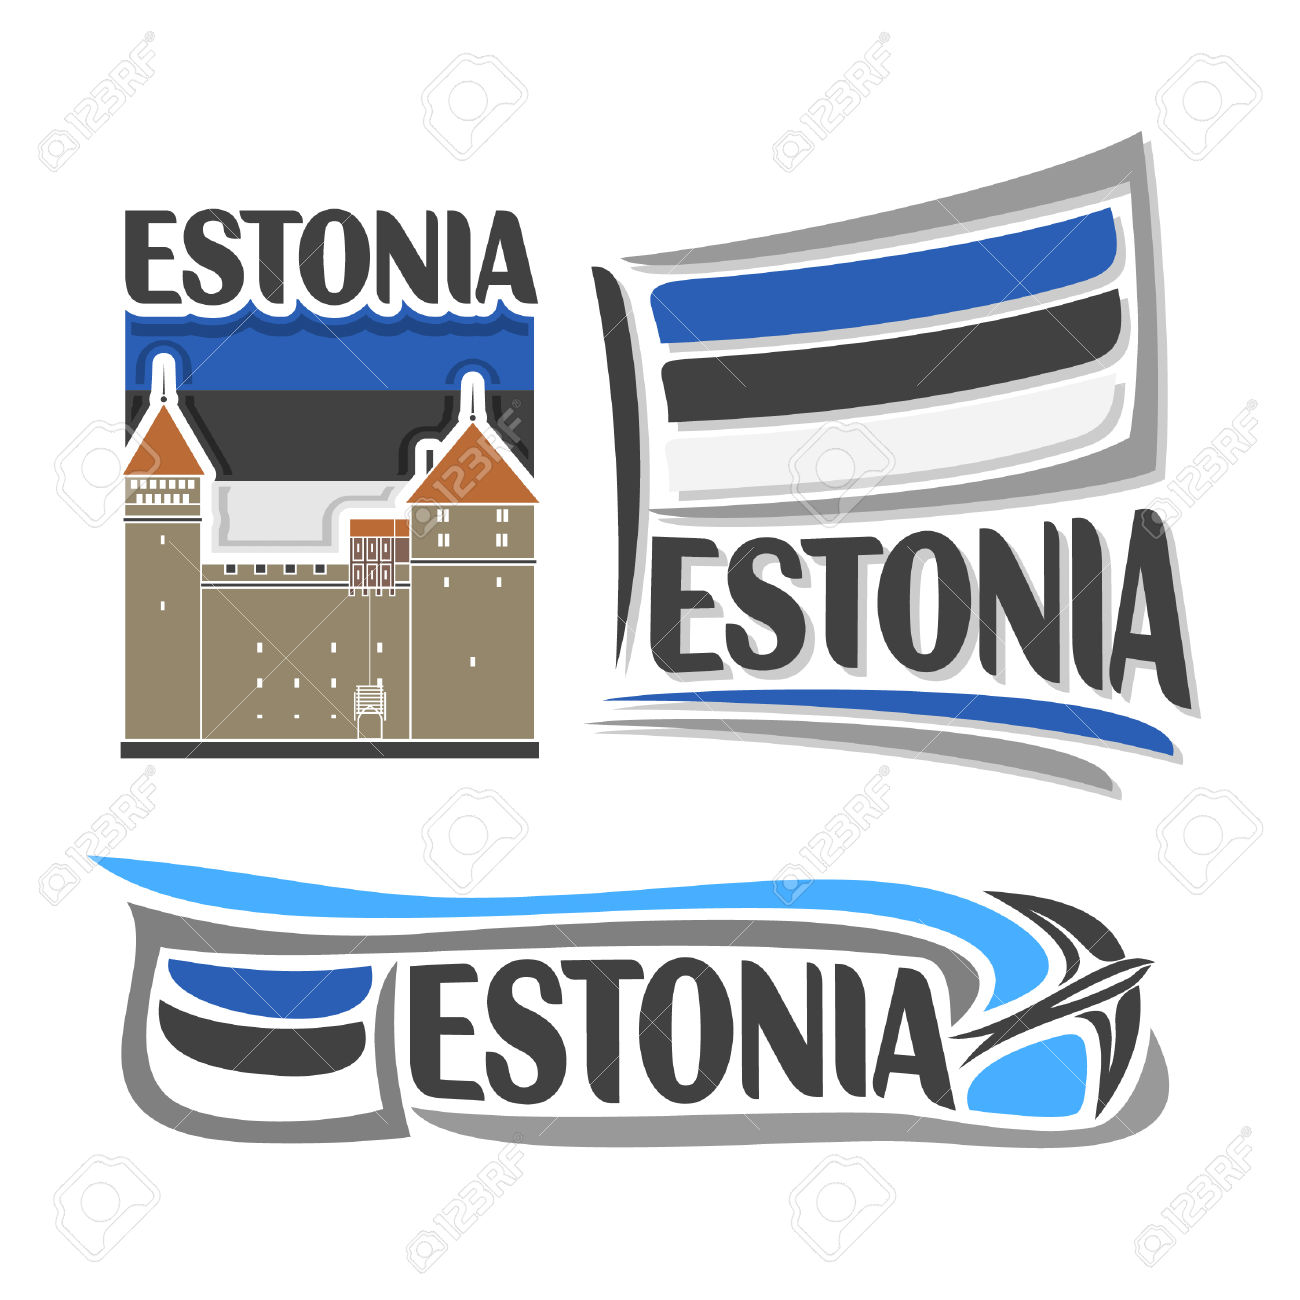 Icon For Estonia, Consisting Of 3 Isolated Illustrations.